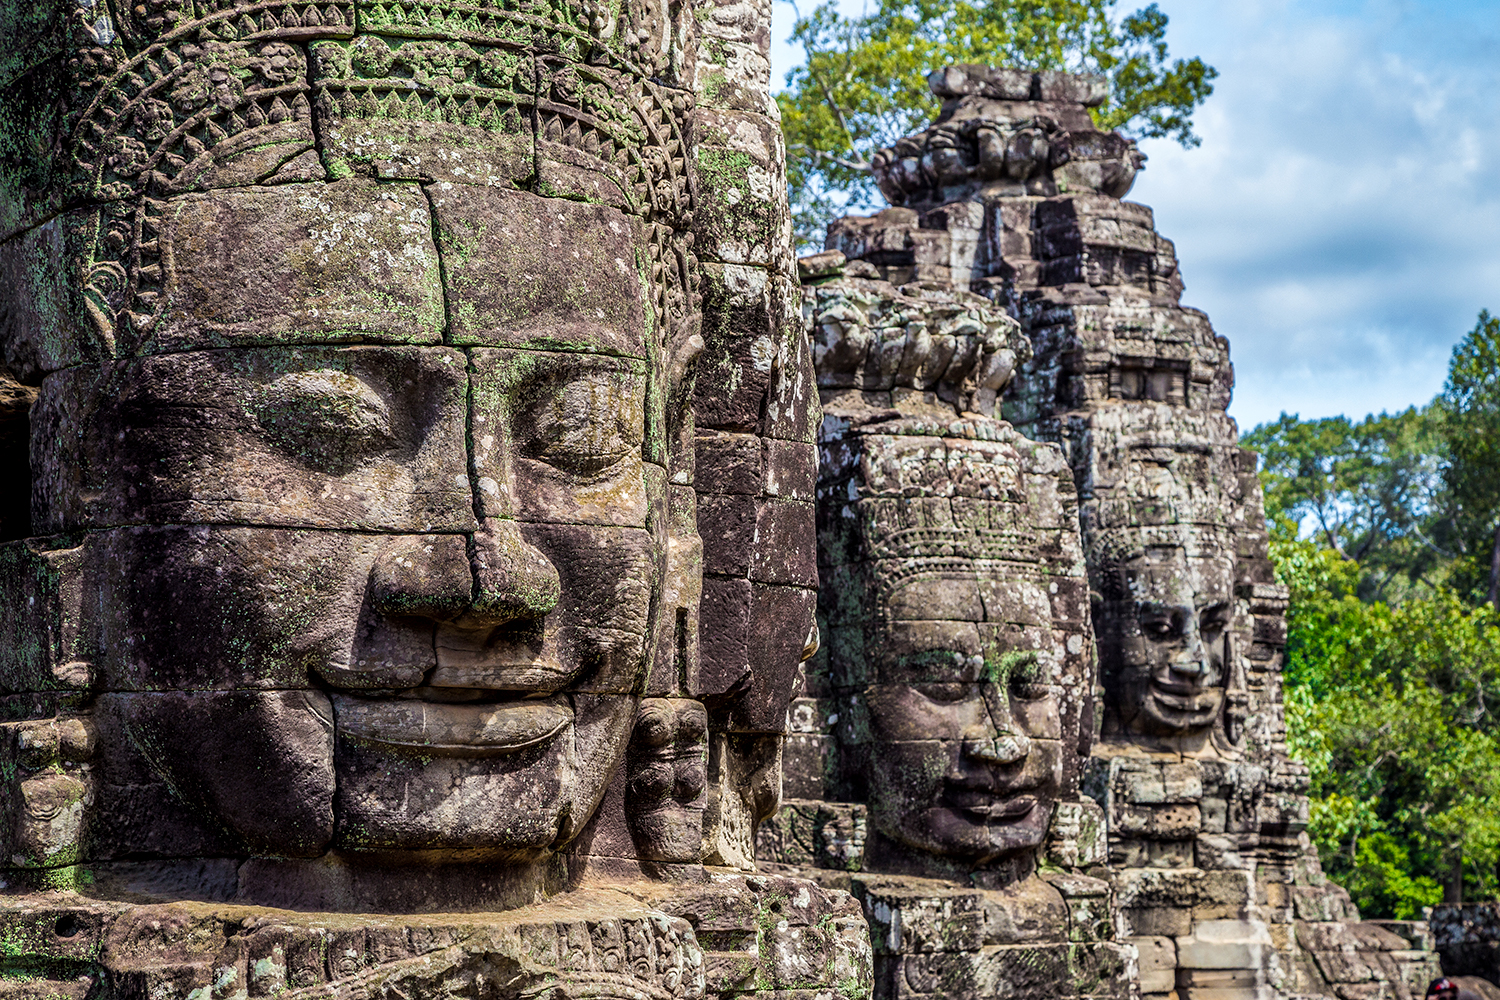 Buddhist faces on towers at Bayon Temple, Cambodia